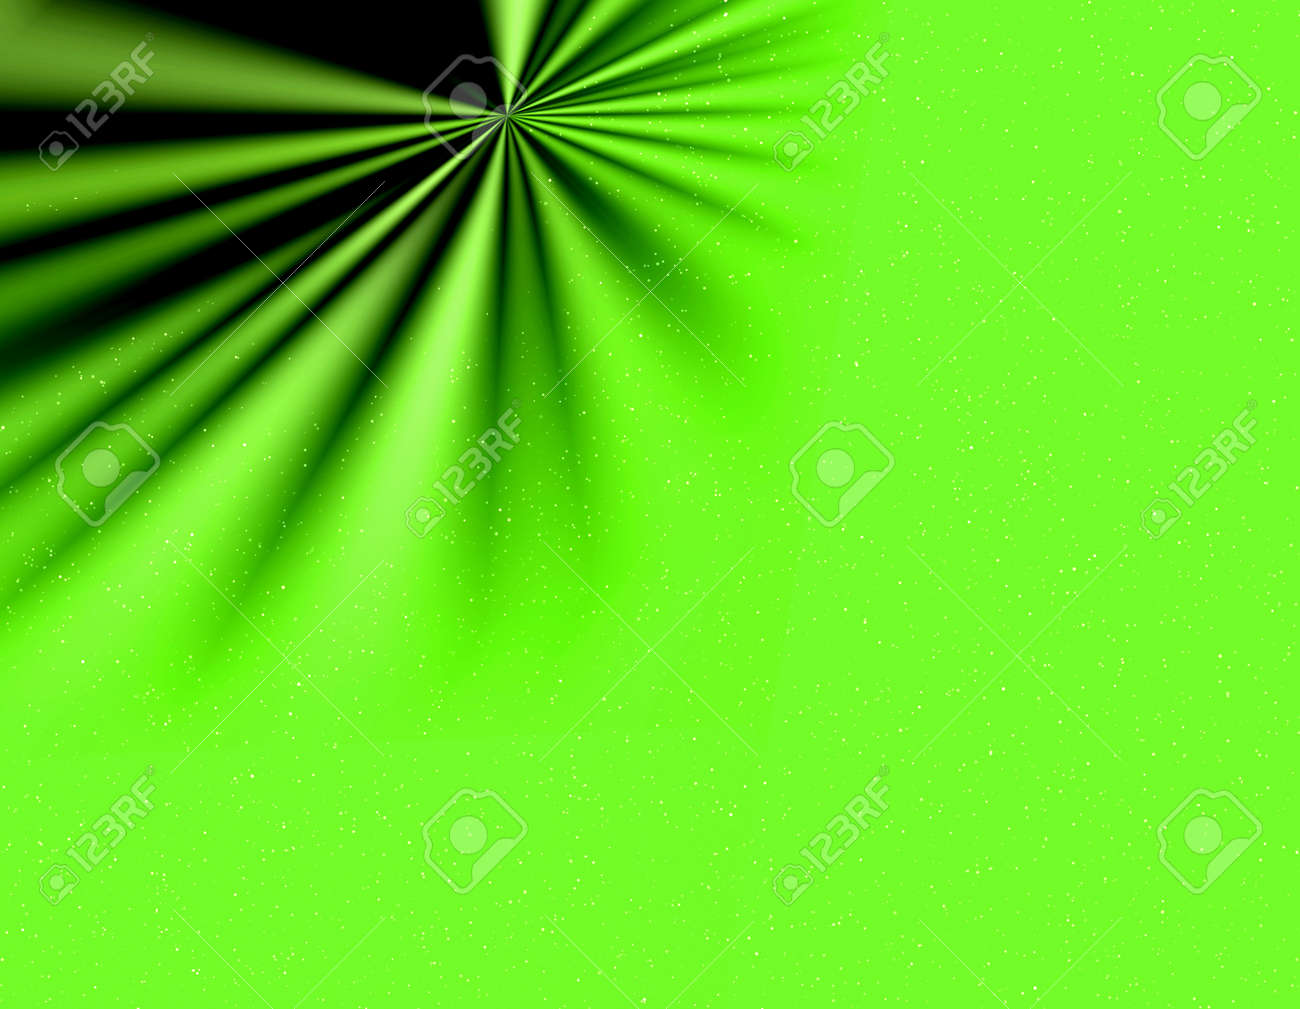 Abstraction green design, background for card and other design artworks Stock Photo - 9736715